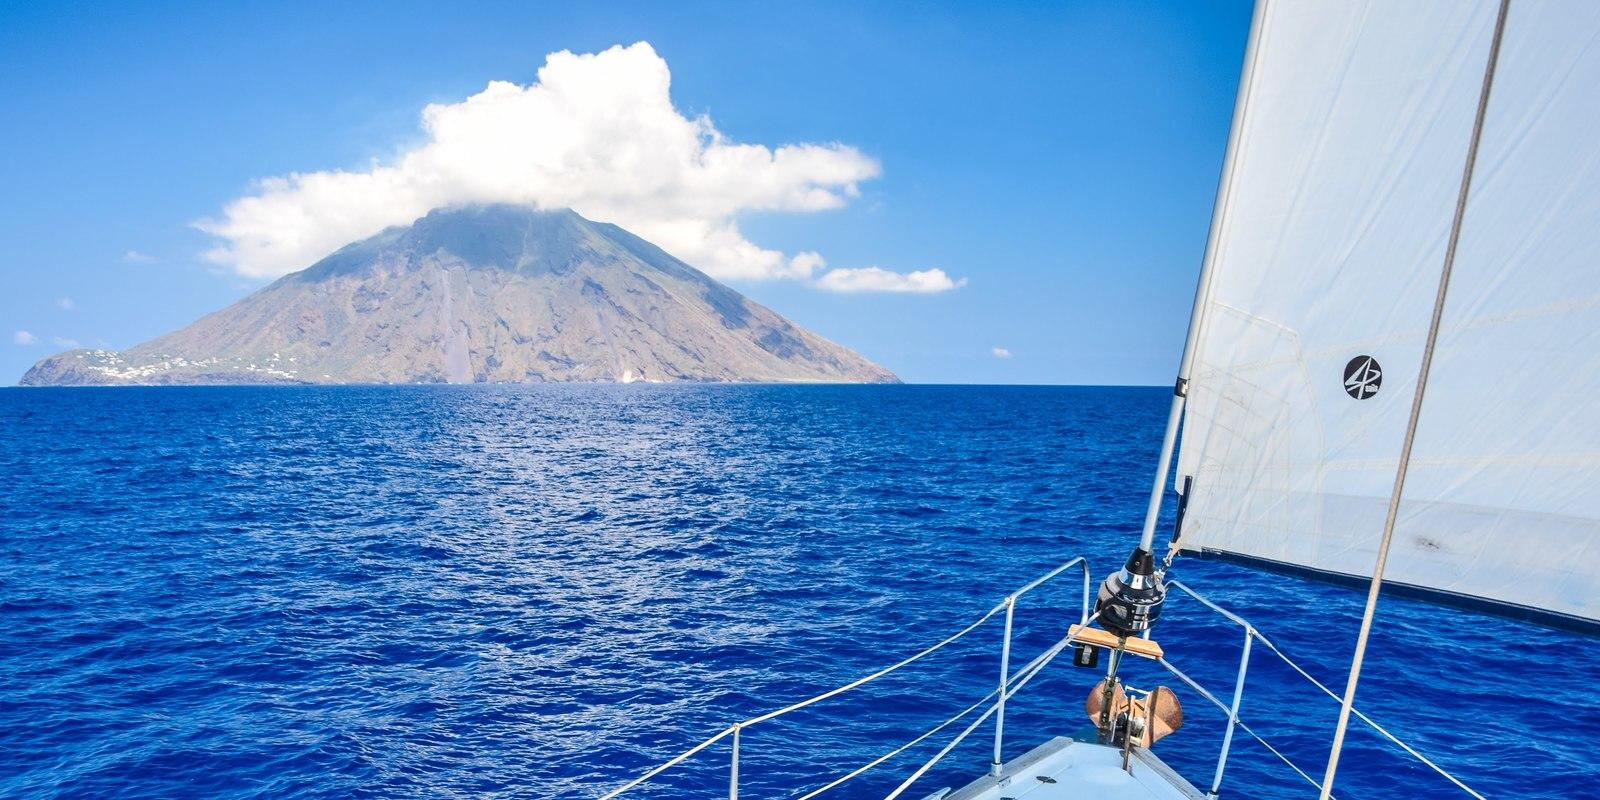 Discovering the lands of Eolo - The magnificent Aeolian Islands